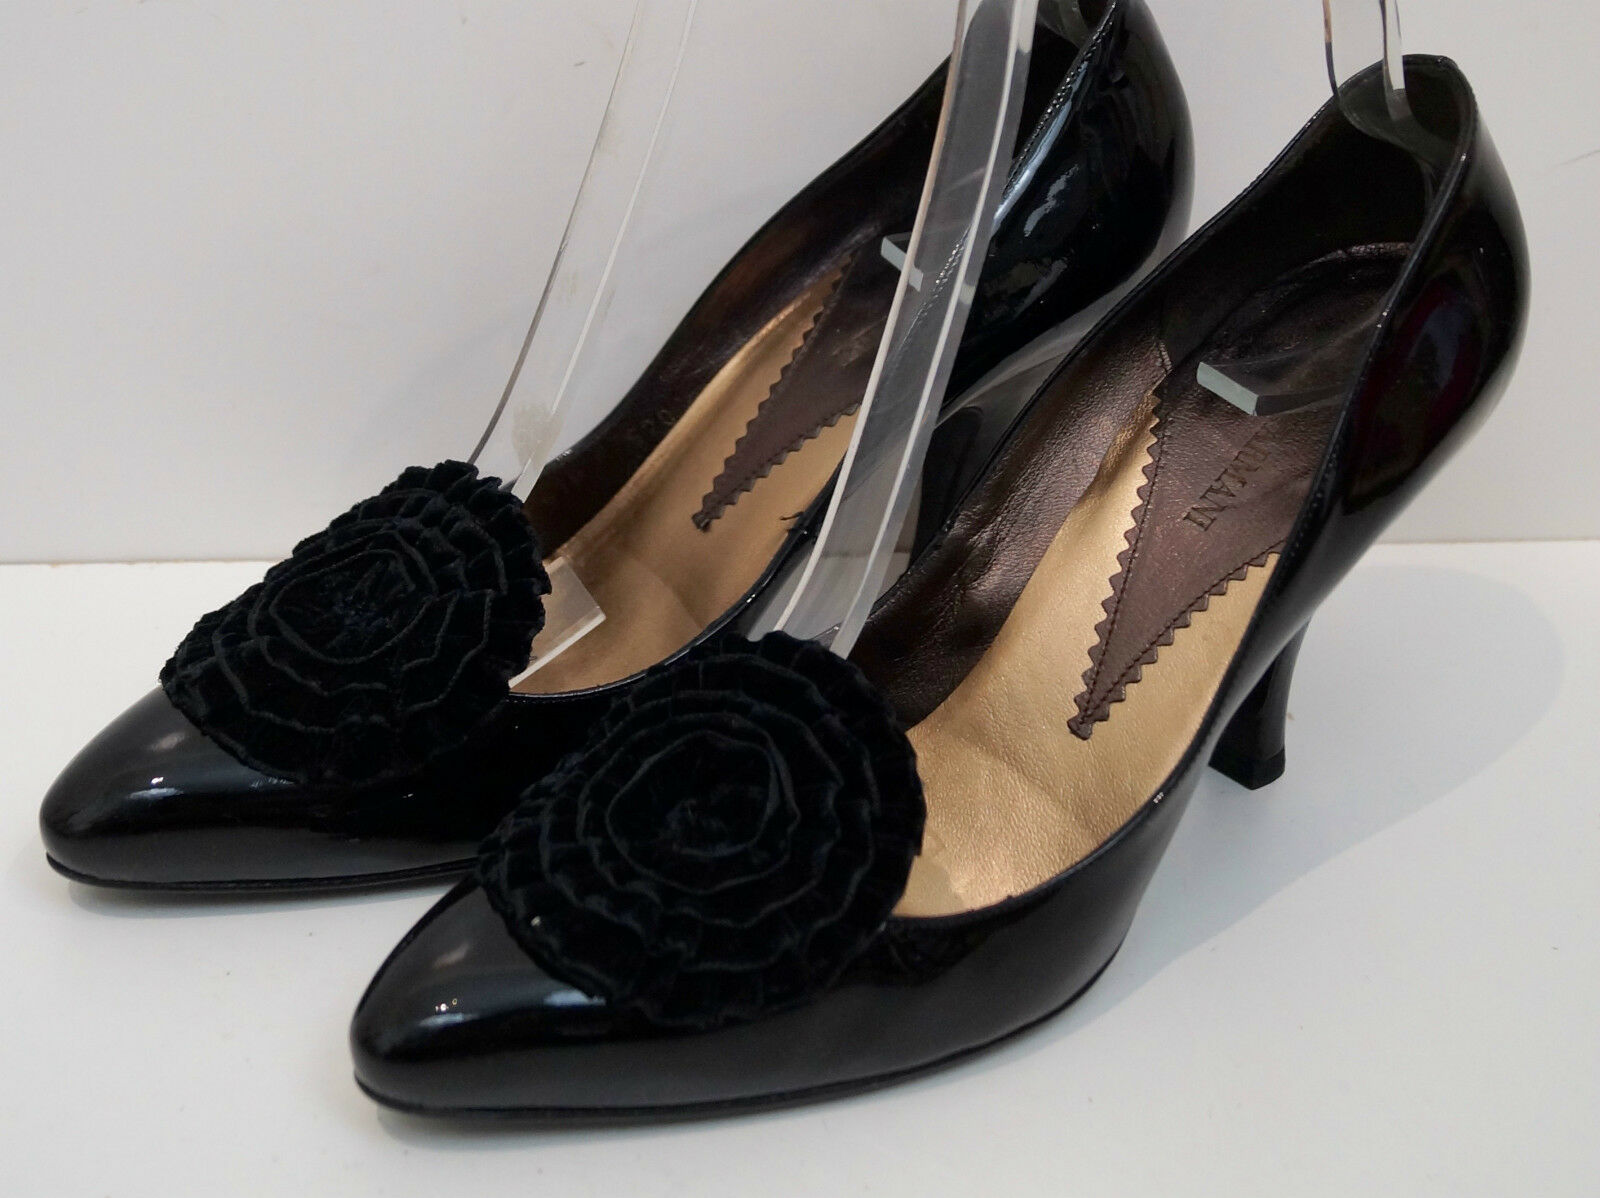 GIORGIO ARMANI Black Leather Patent Velvet Floral High Heel Court shoes EU40 UK7